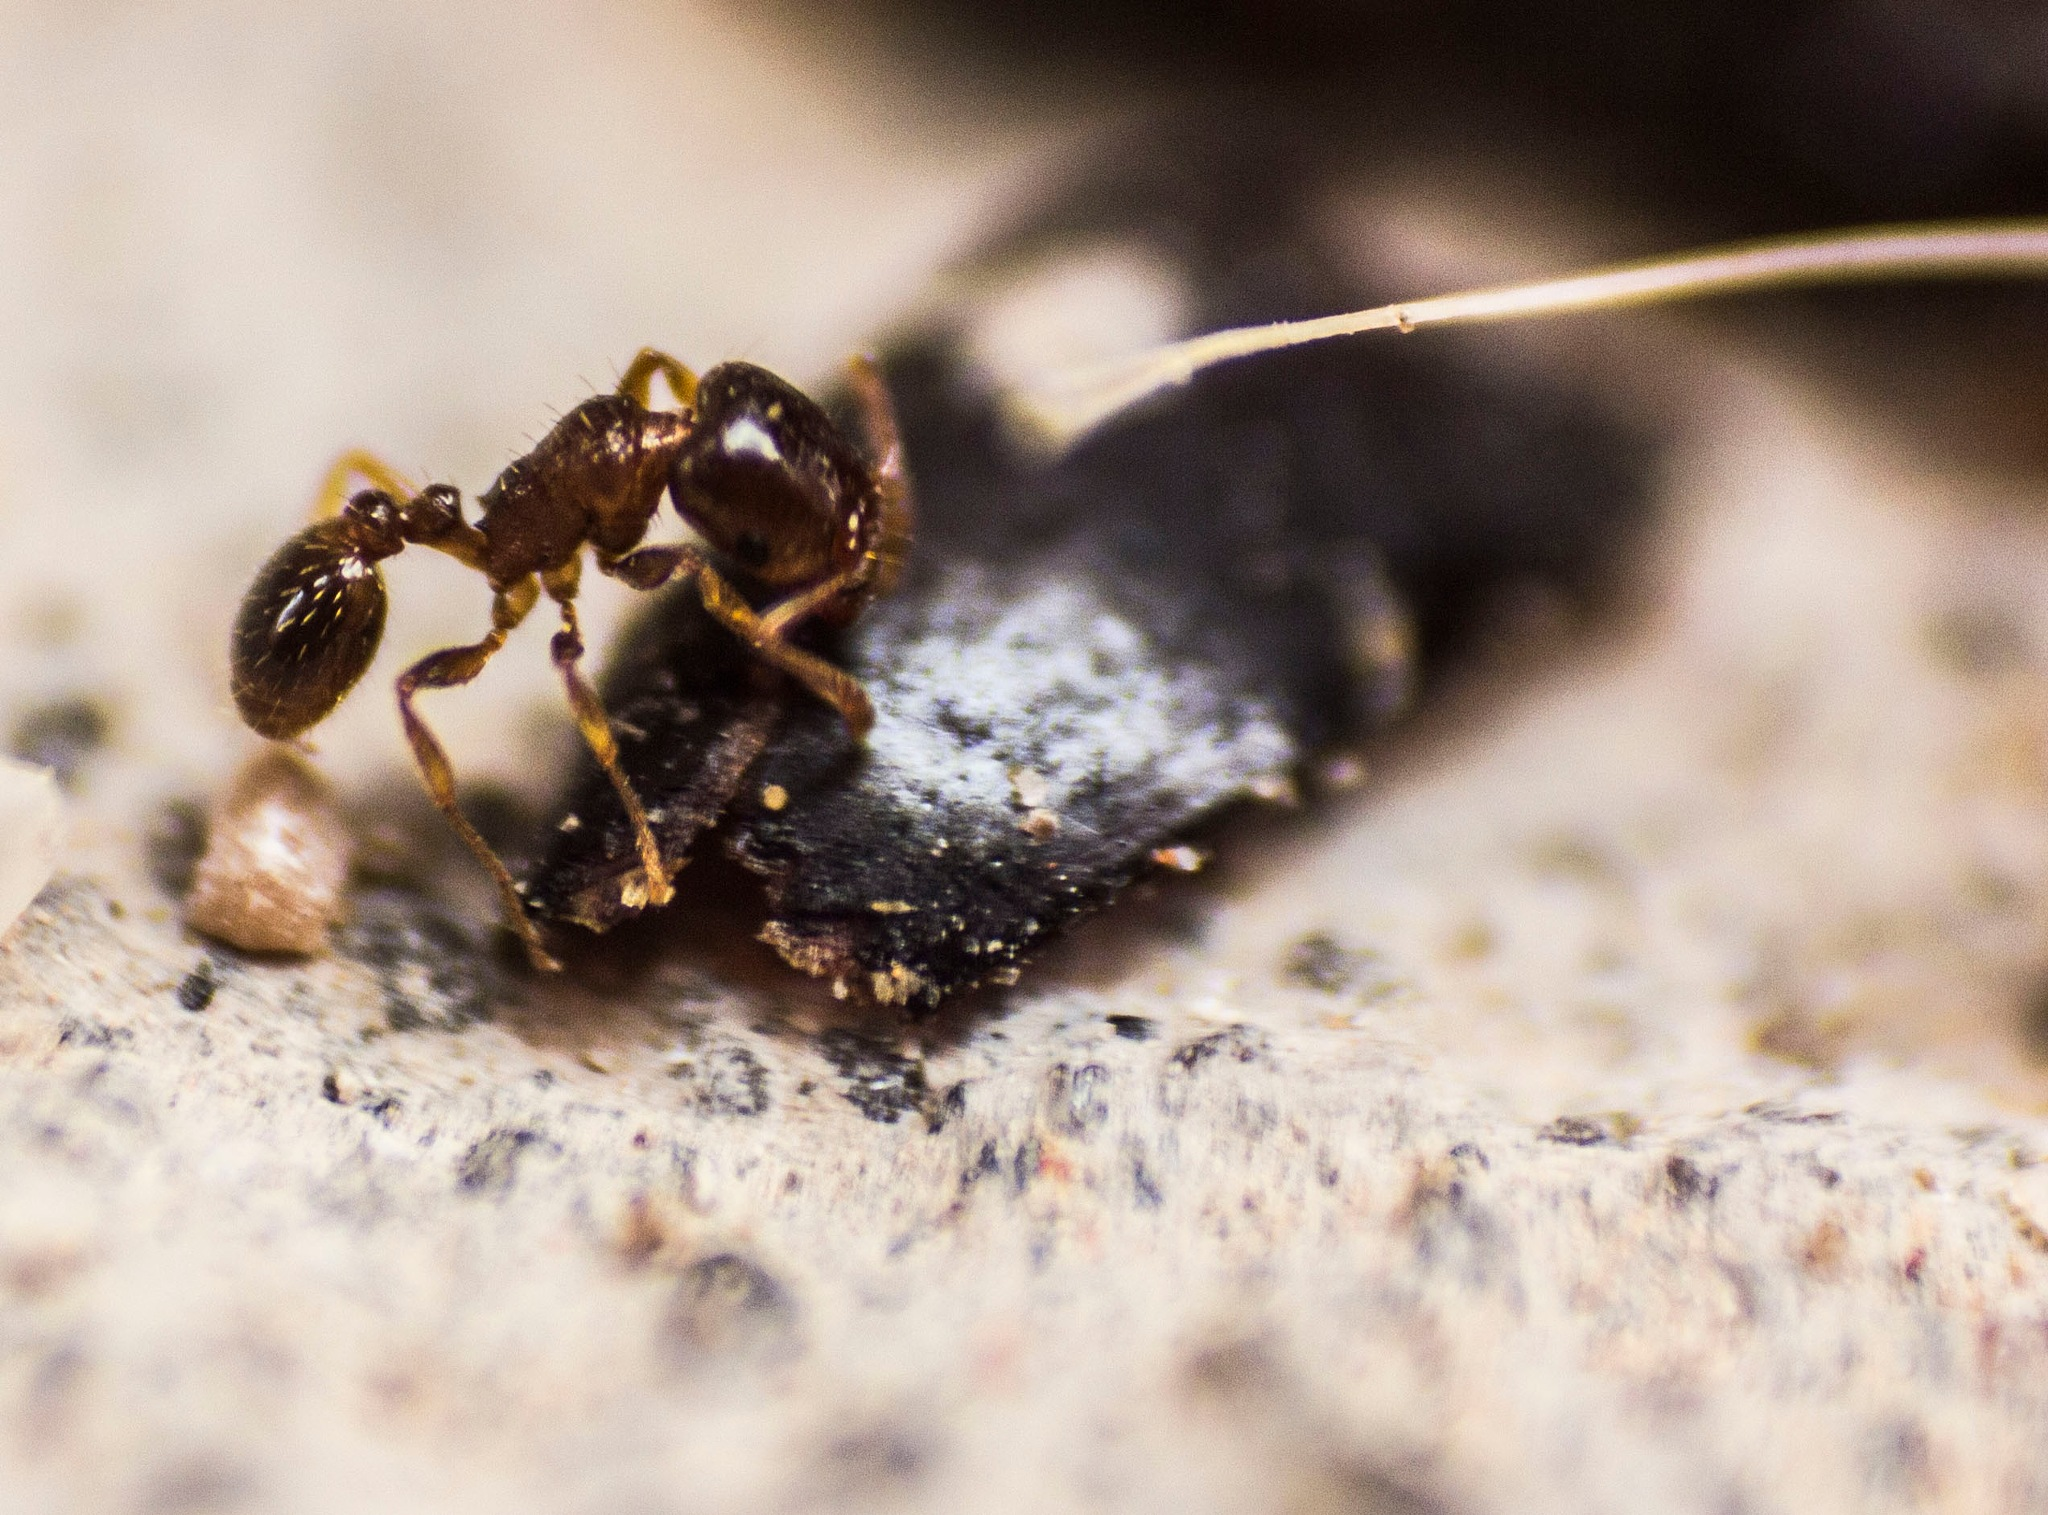 Ant eat Ant by Mahdi Chabou